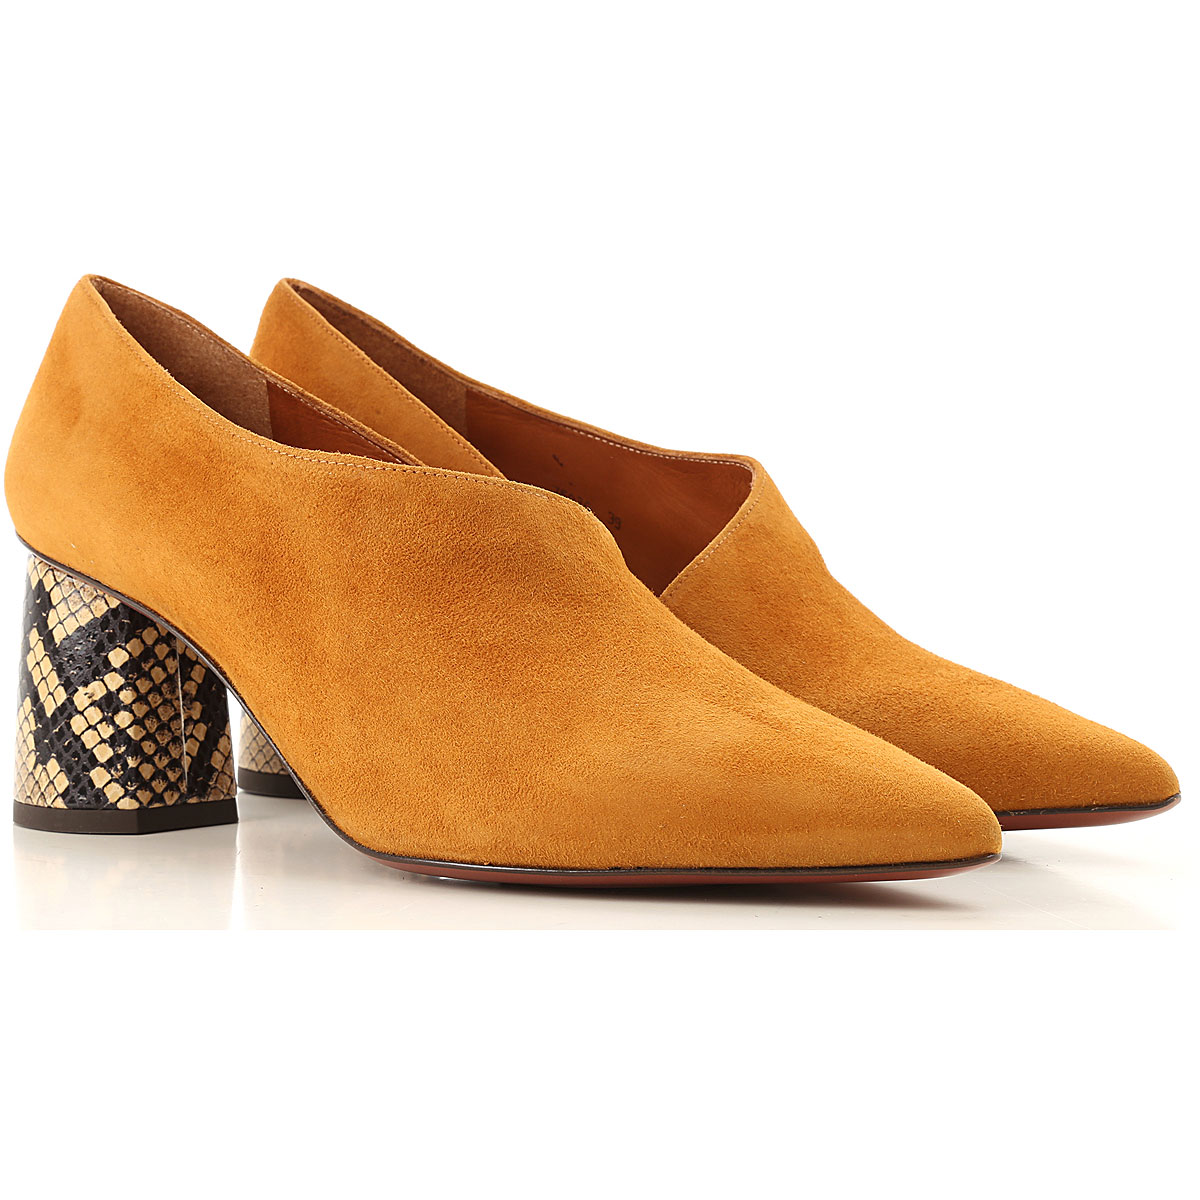 Chie Mihara Womens Shoes On Sale, Tobacco, suede, 2019, 6 7 8 9